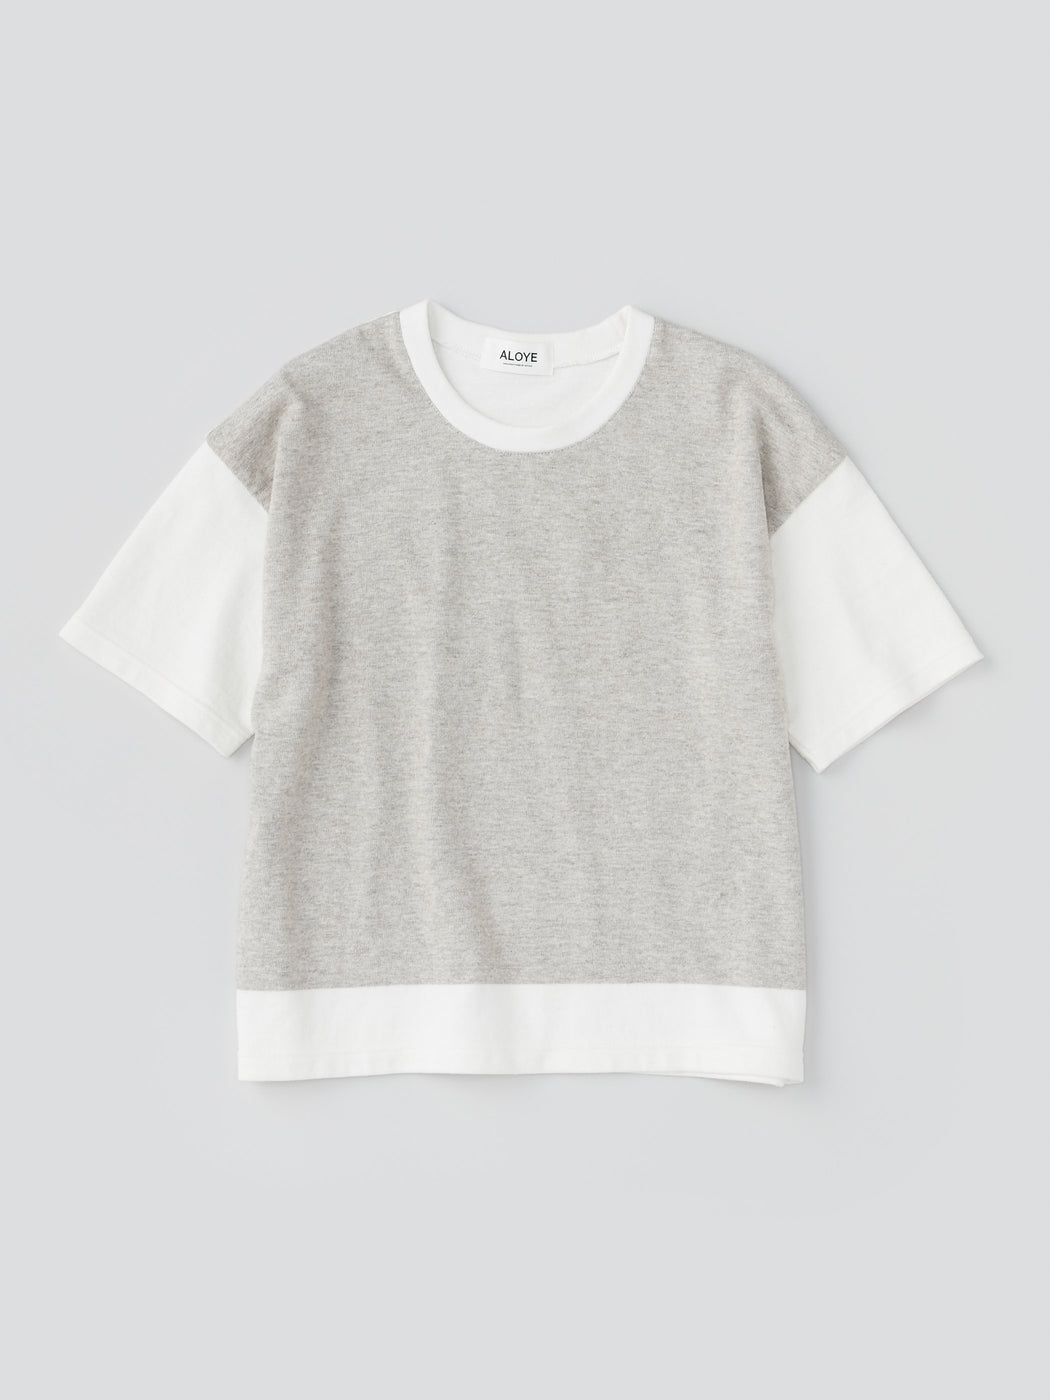 ALOYE G.F.G.S. Women's Cotton Knitted Wide T-shirt Heather Gray-Off White